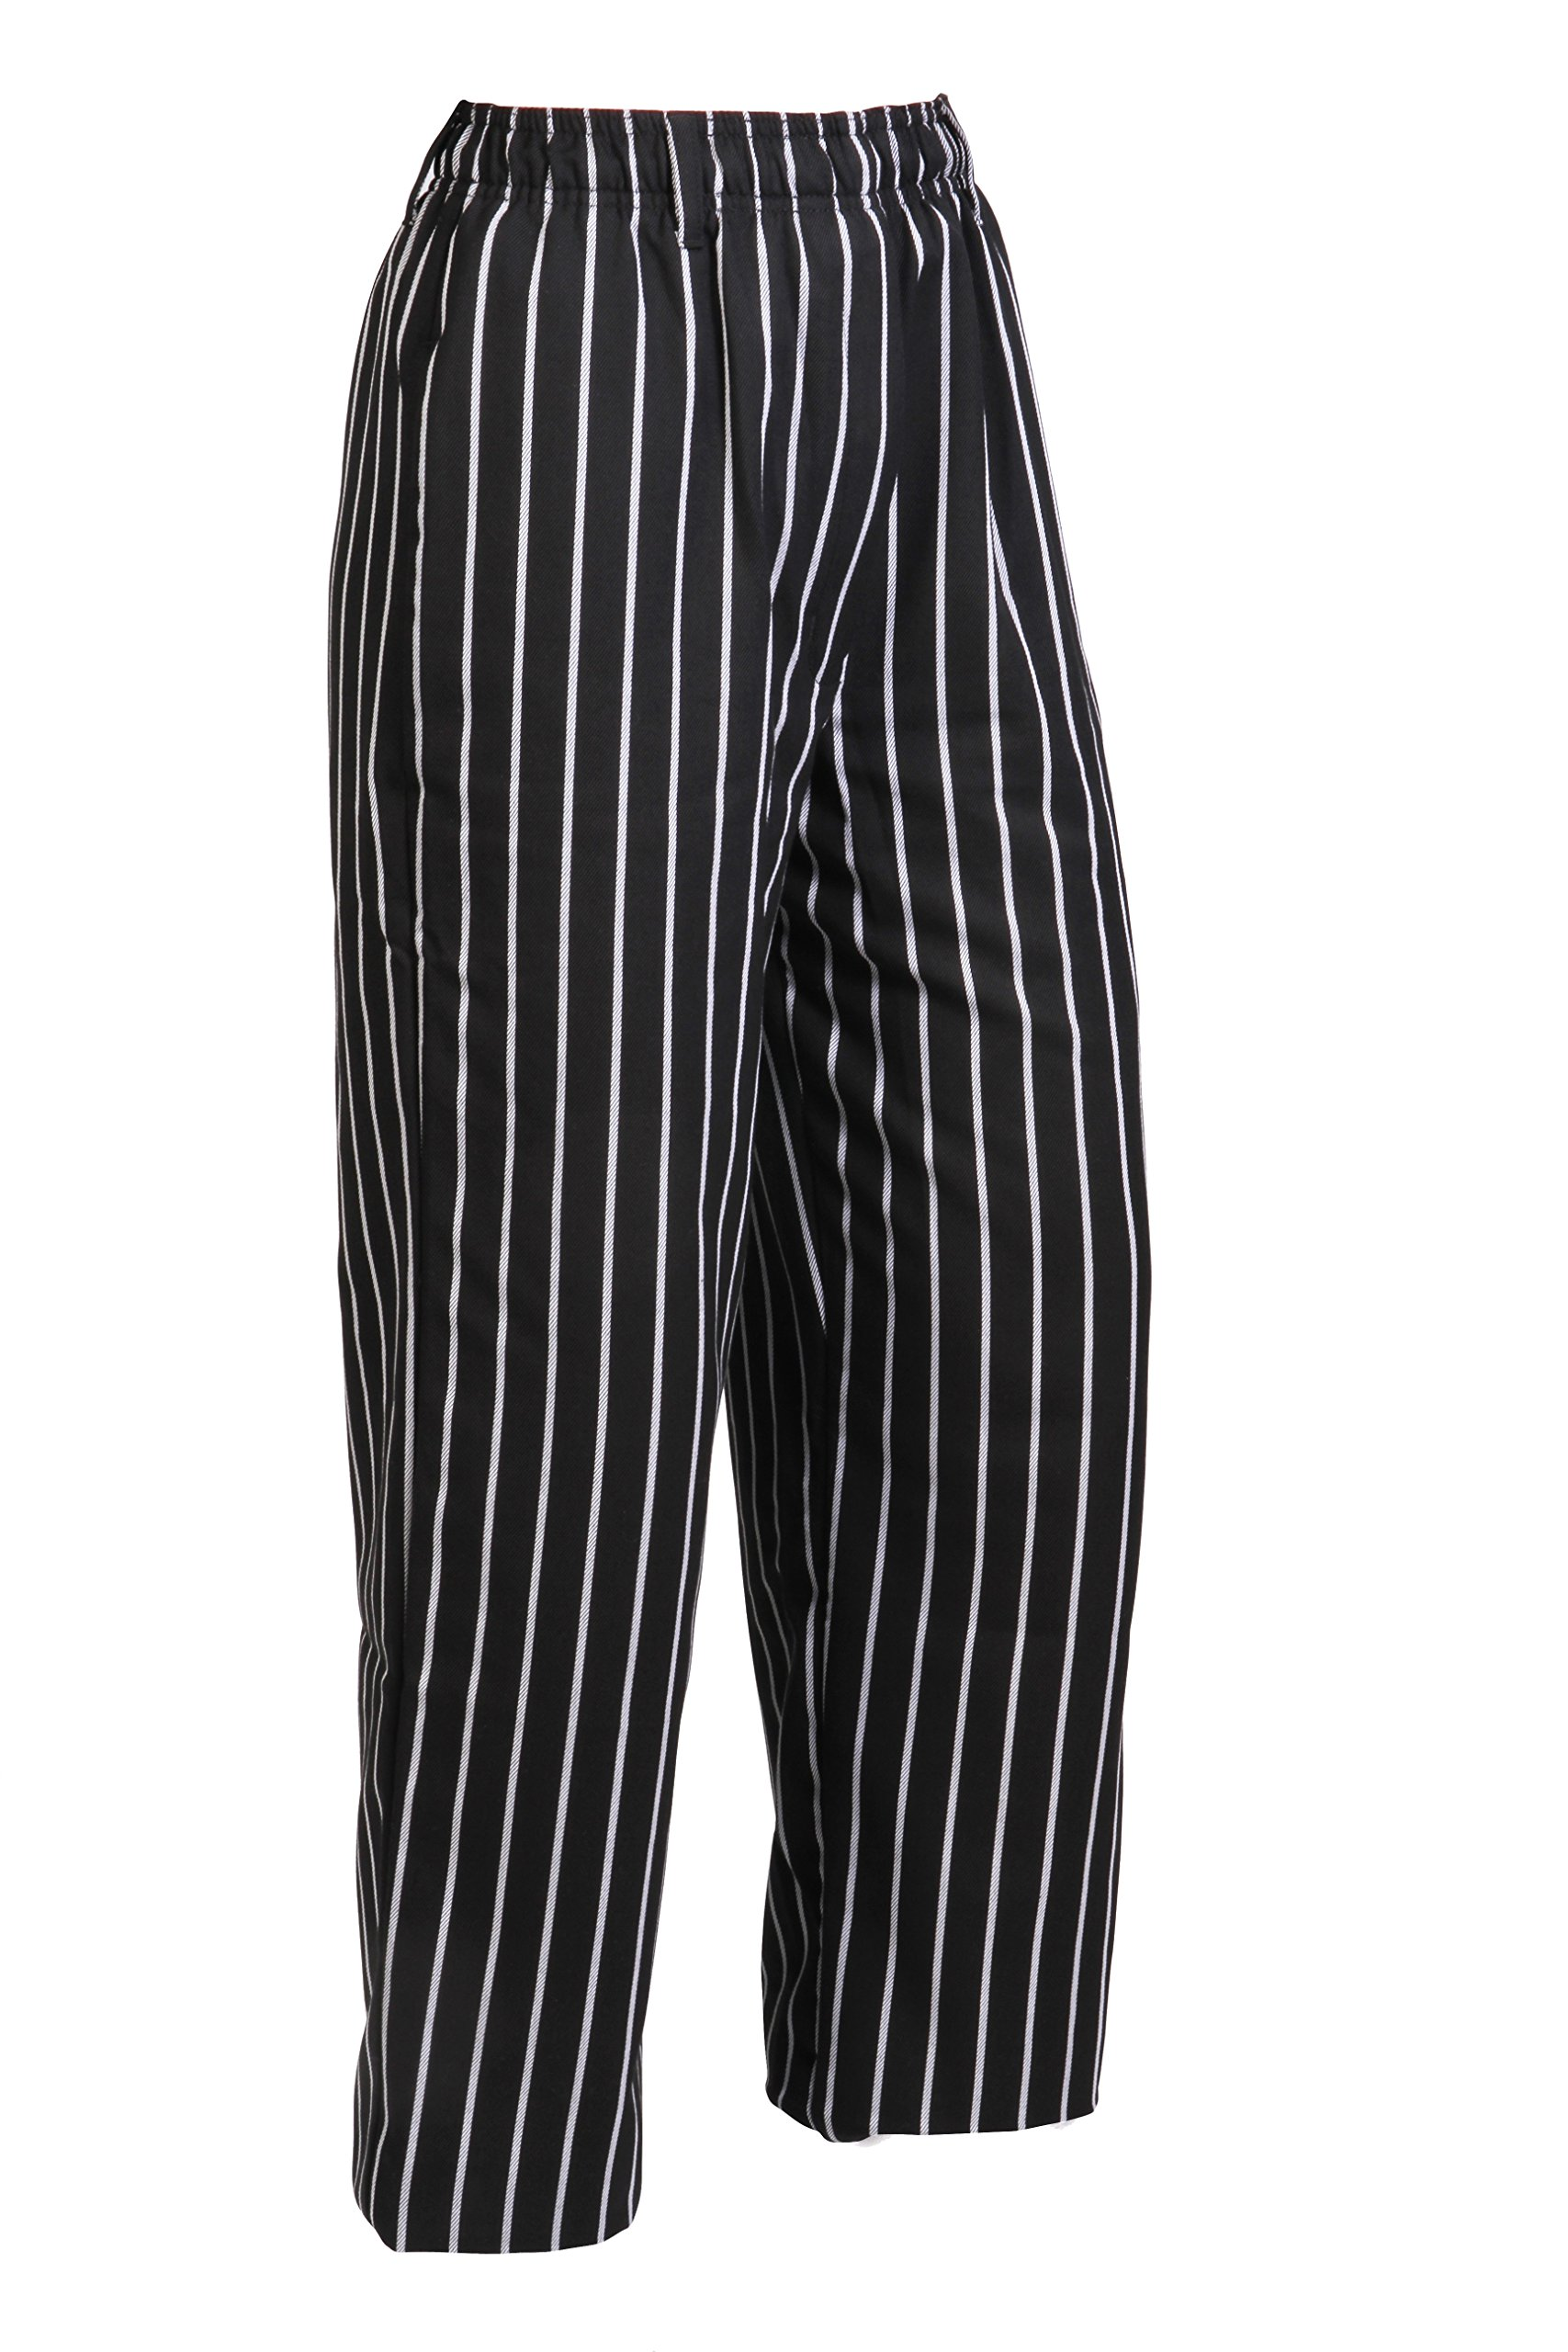 Mercer Culinary M60030BCS1X Millennia Men's Black Cook Pants with White Chalk Stripe, X-Large by Mercer Culinary